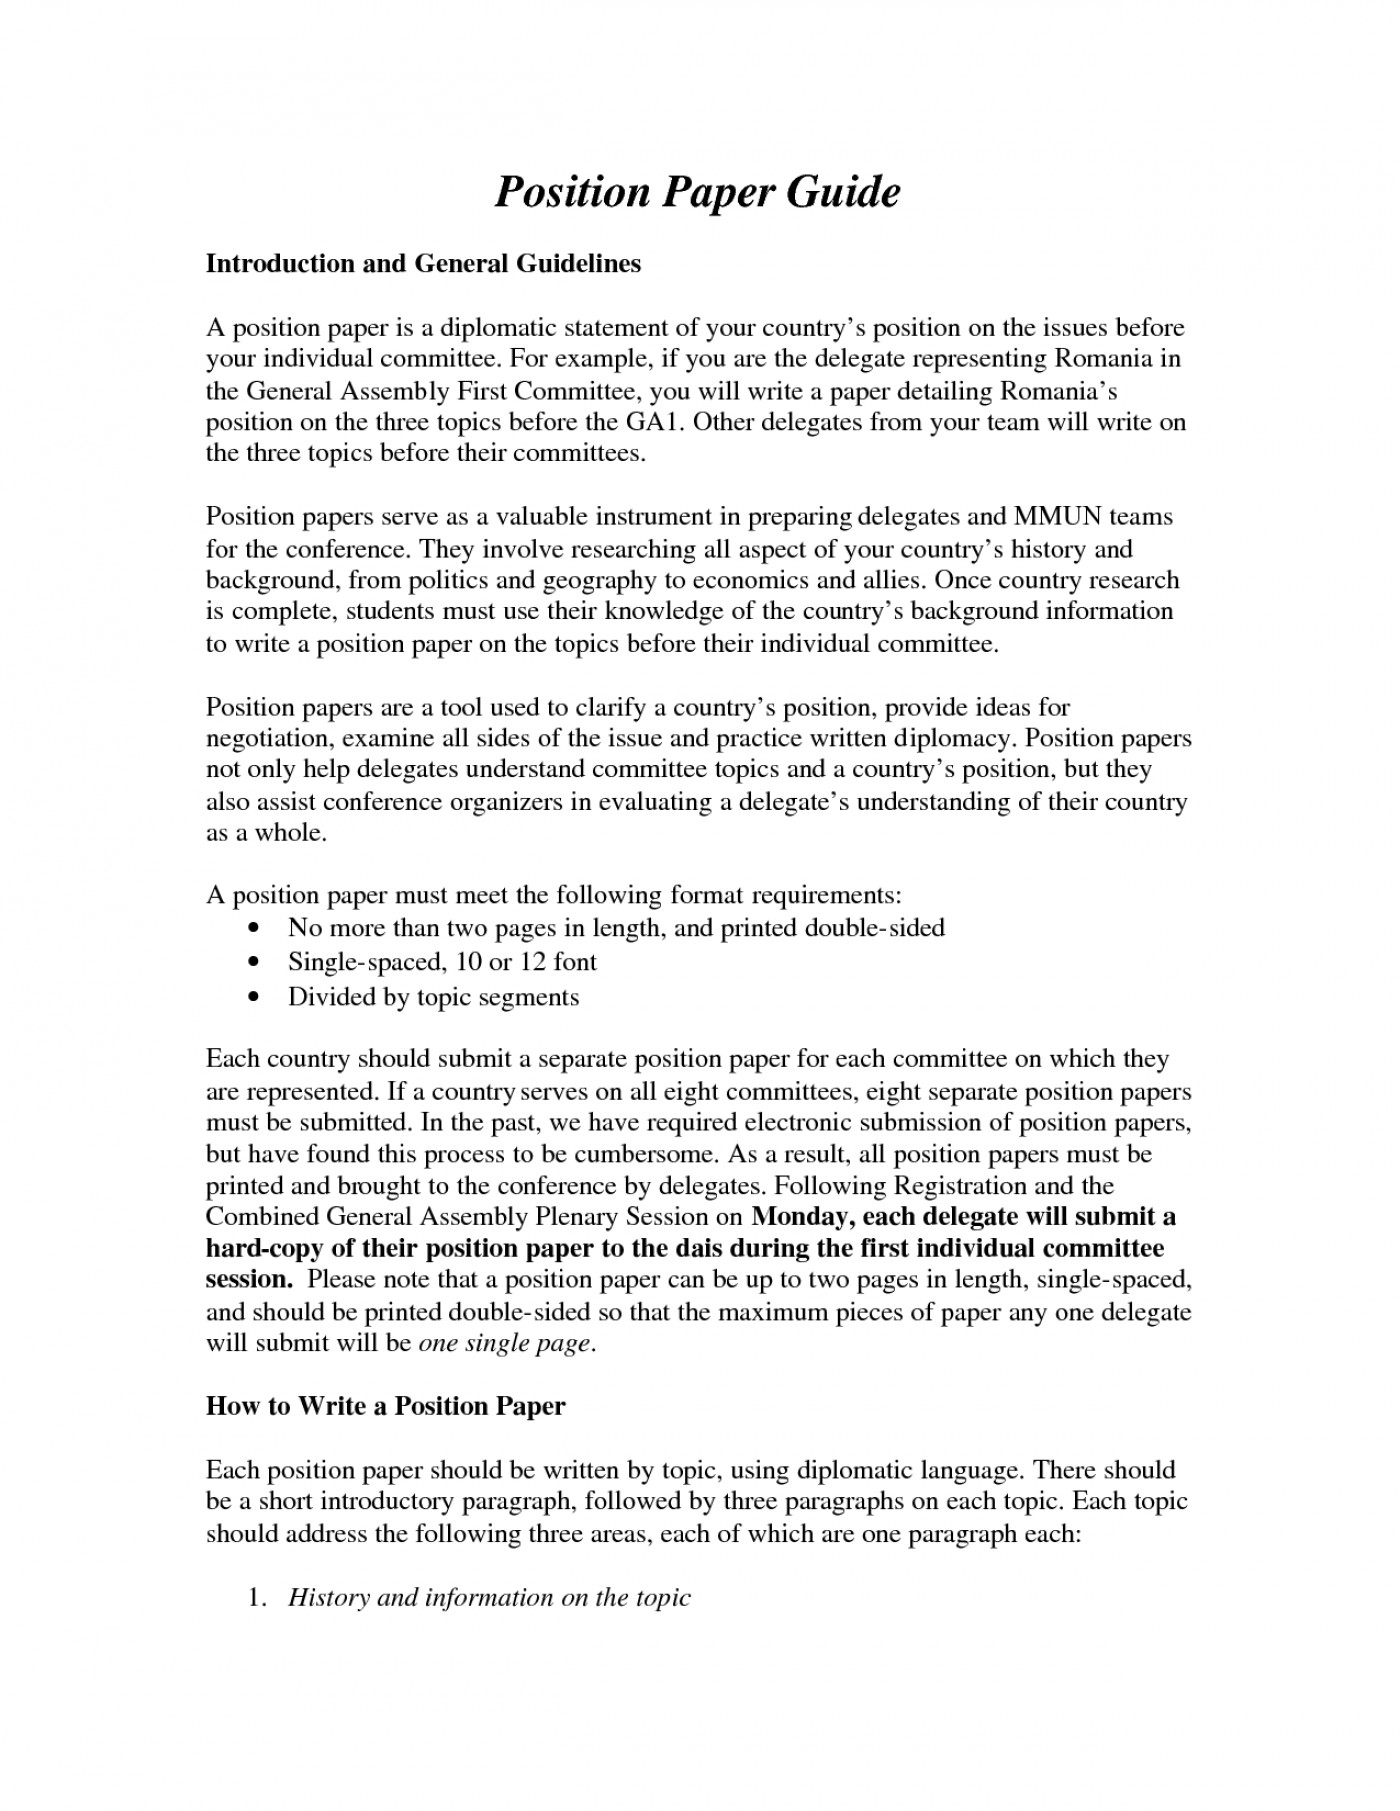 011 Research Papers Topics Paper Proposal Example 343593 Phenomenal For High School Students In Management 1400